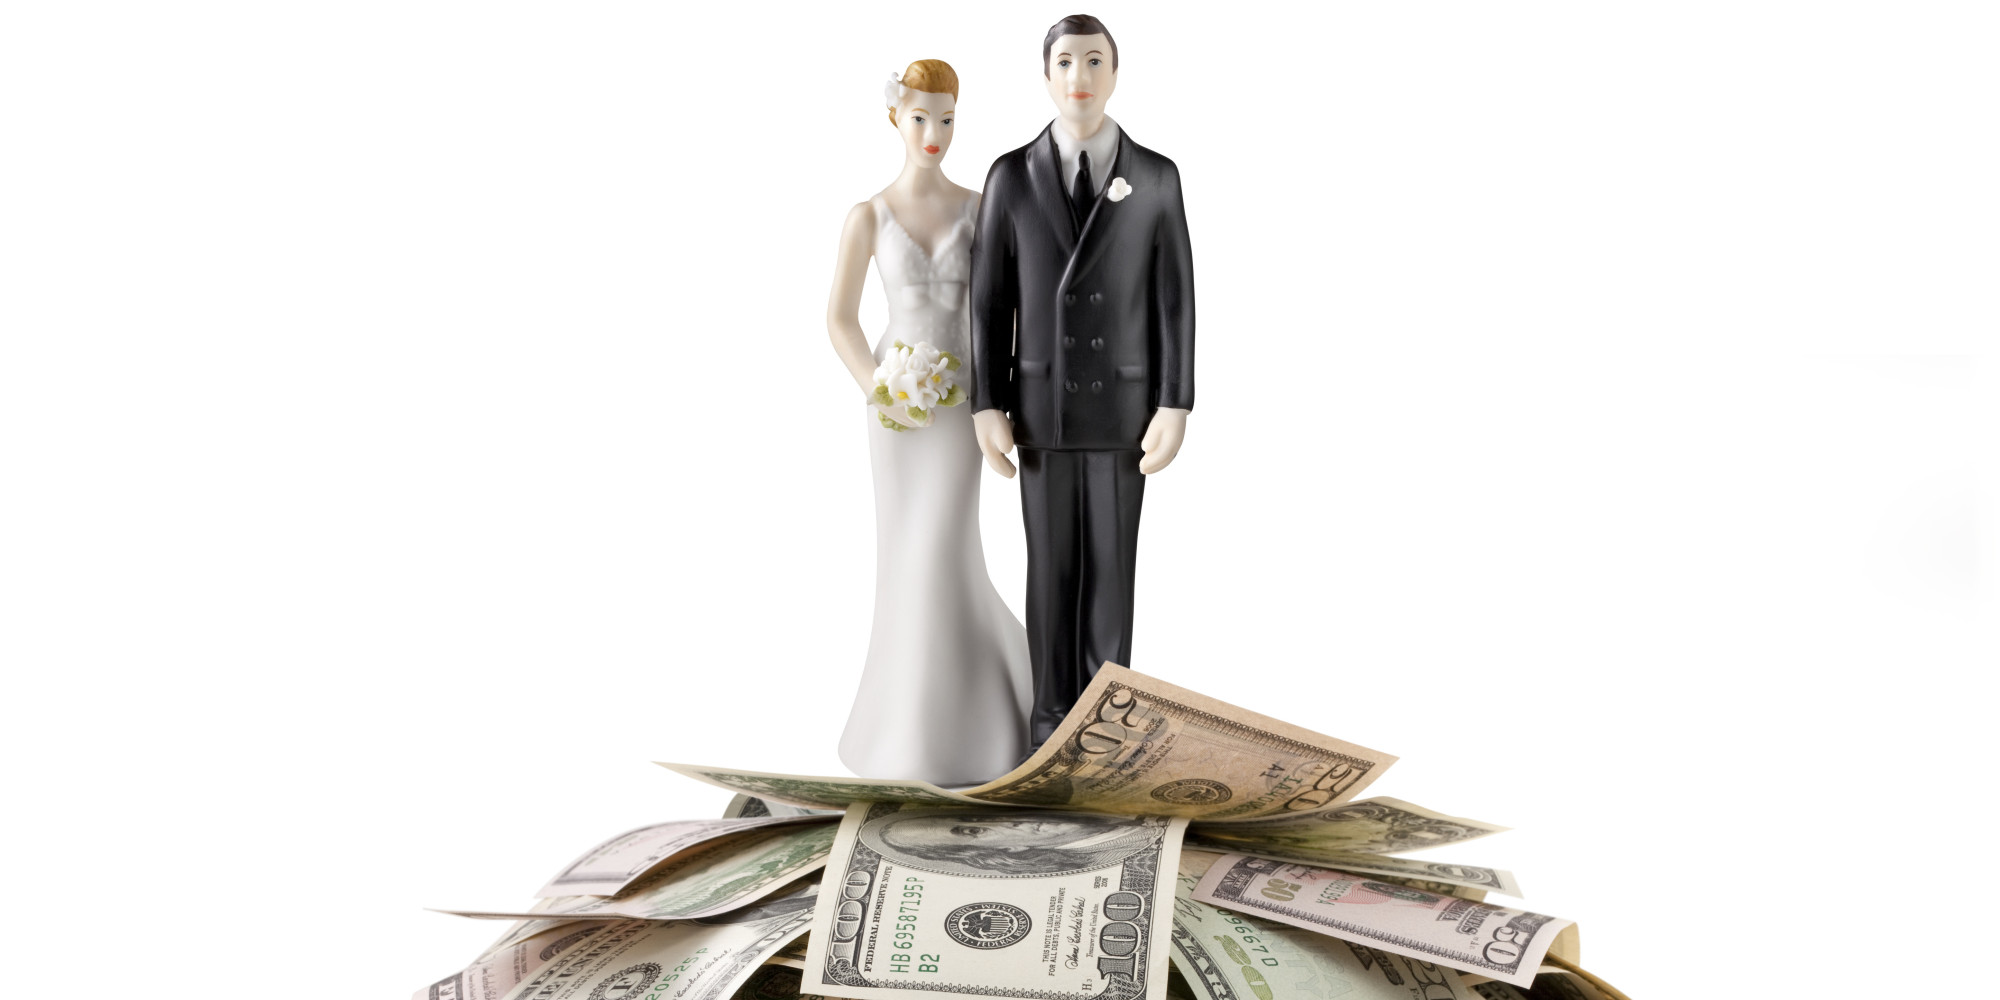 Wedding Gift Ideas Cash : Youre Married. Now What? How to Say I Do to a Solid Financial ...